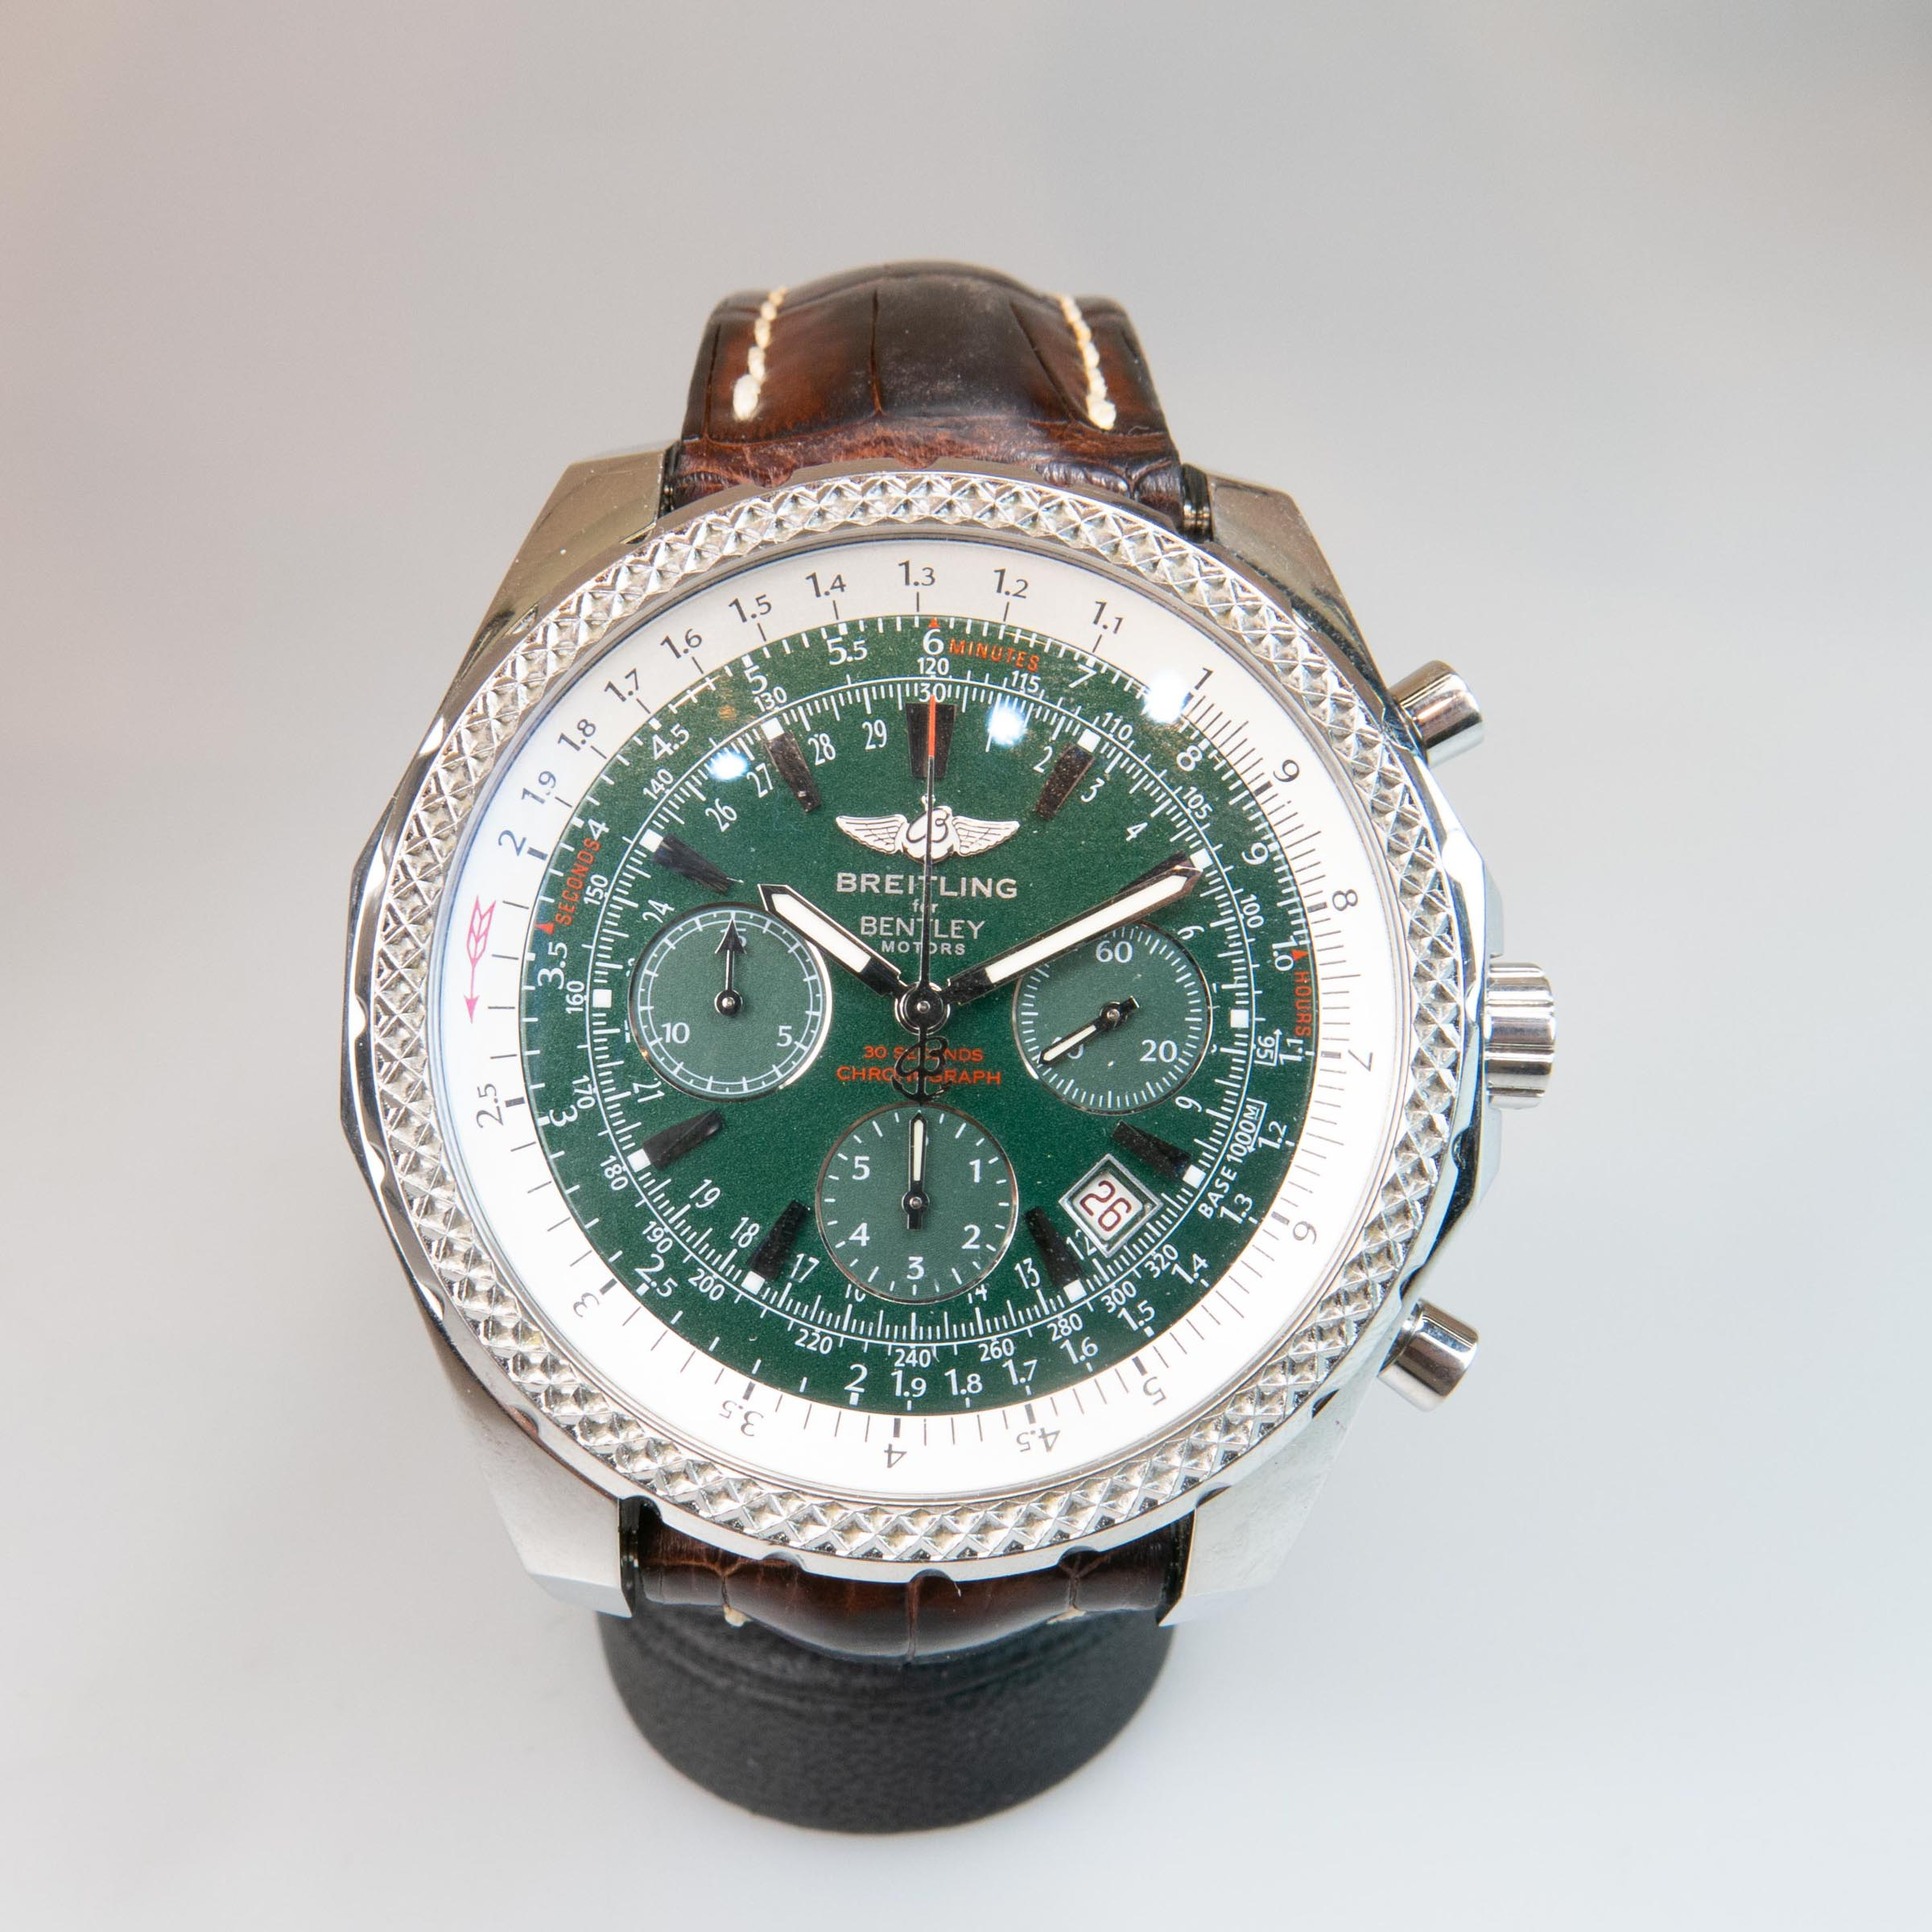 Breitling For Bentley Motors Limited Edition Wristwatch, With Date And Chronograph